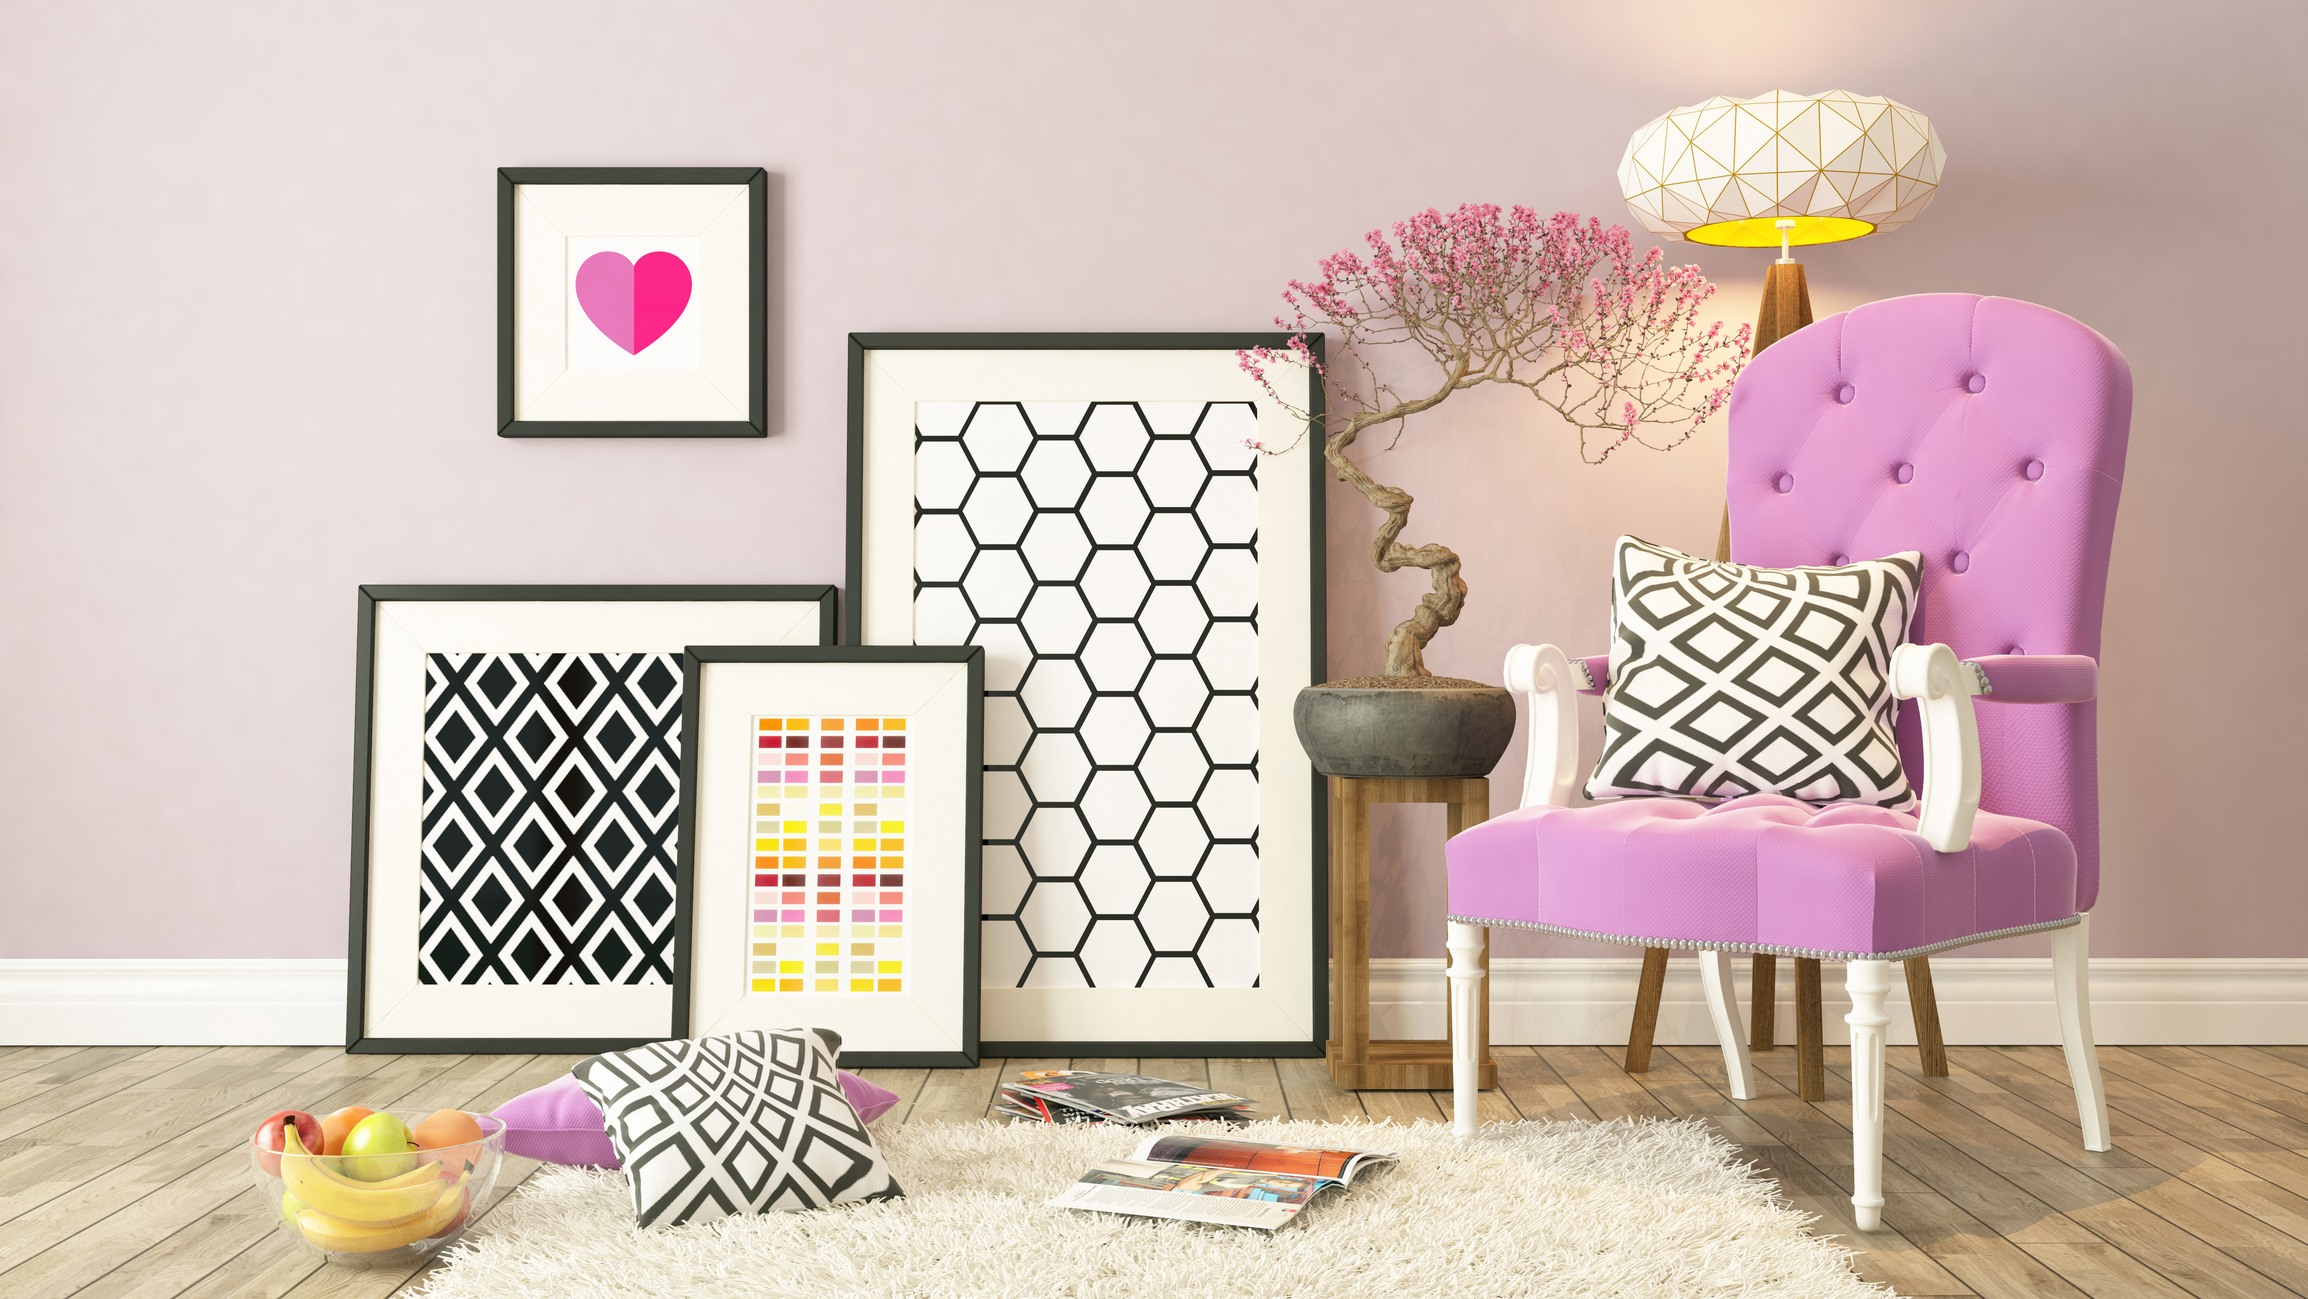 Design A Wall All The Questions You Were Too Embarrassed To Ask About Home Design